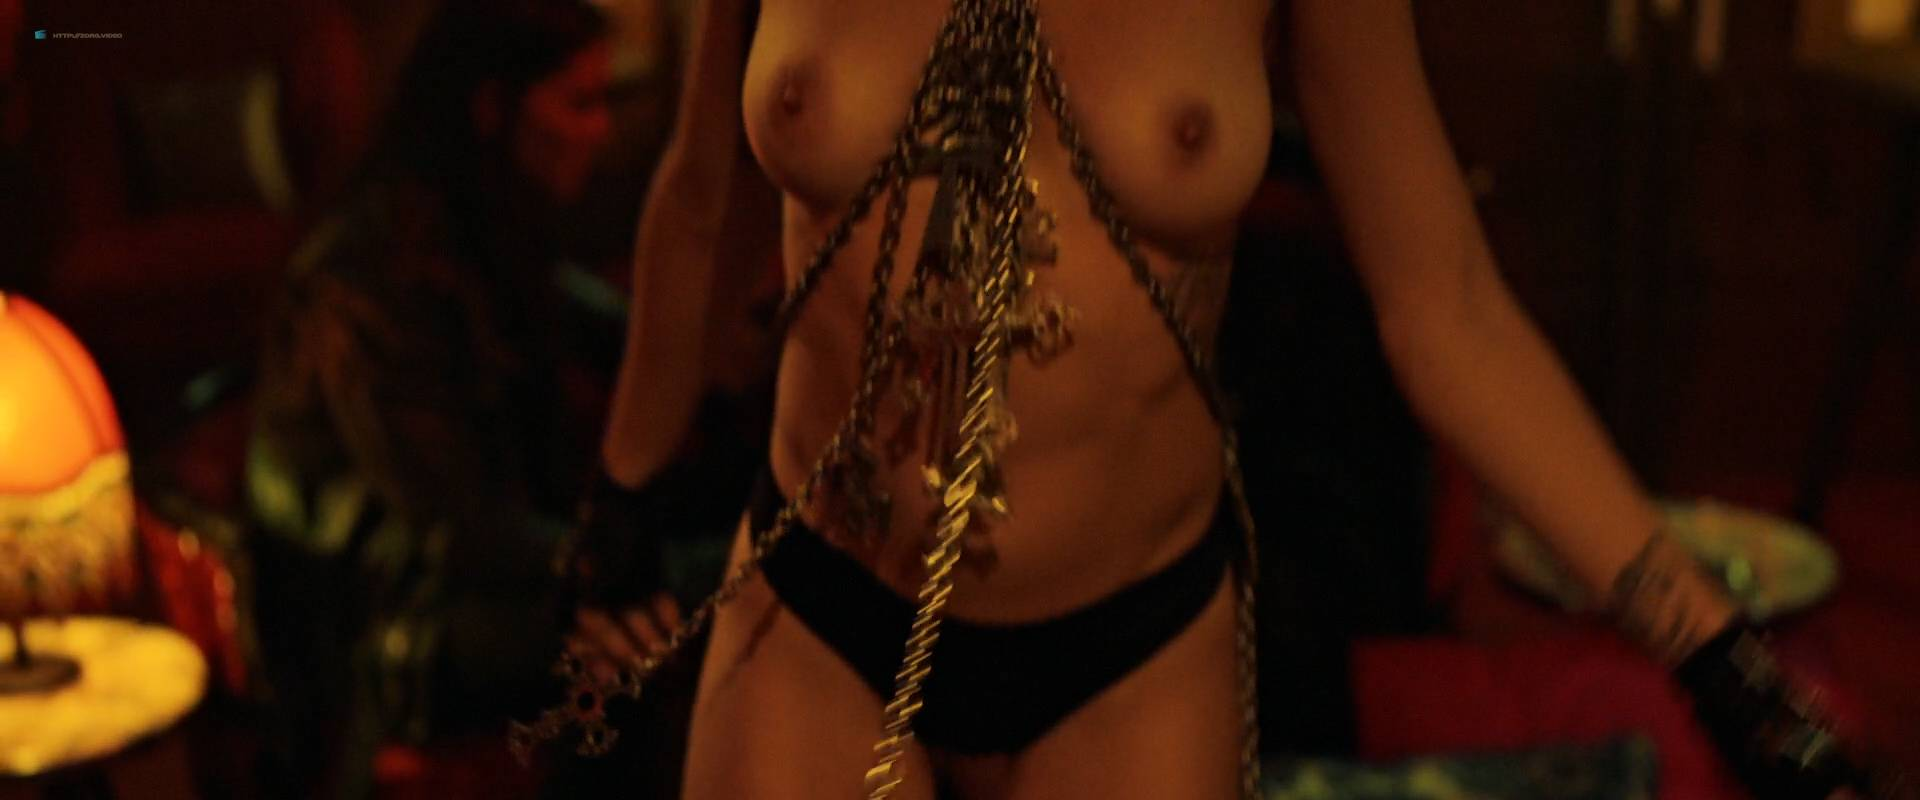 Jesse Sullivan nude topless Cortney Palm and others nude topless too - American Satan (2017) HD 1080p Web (10)